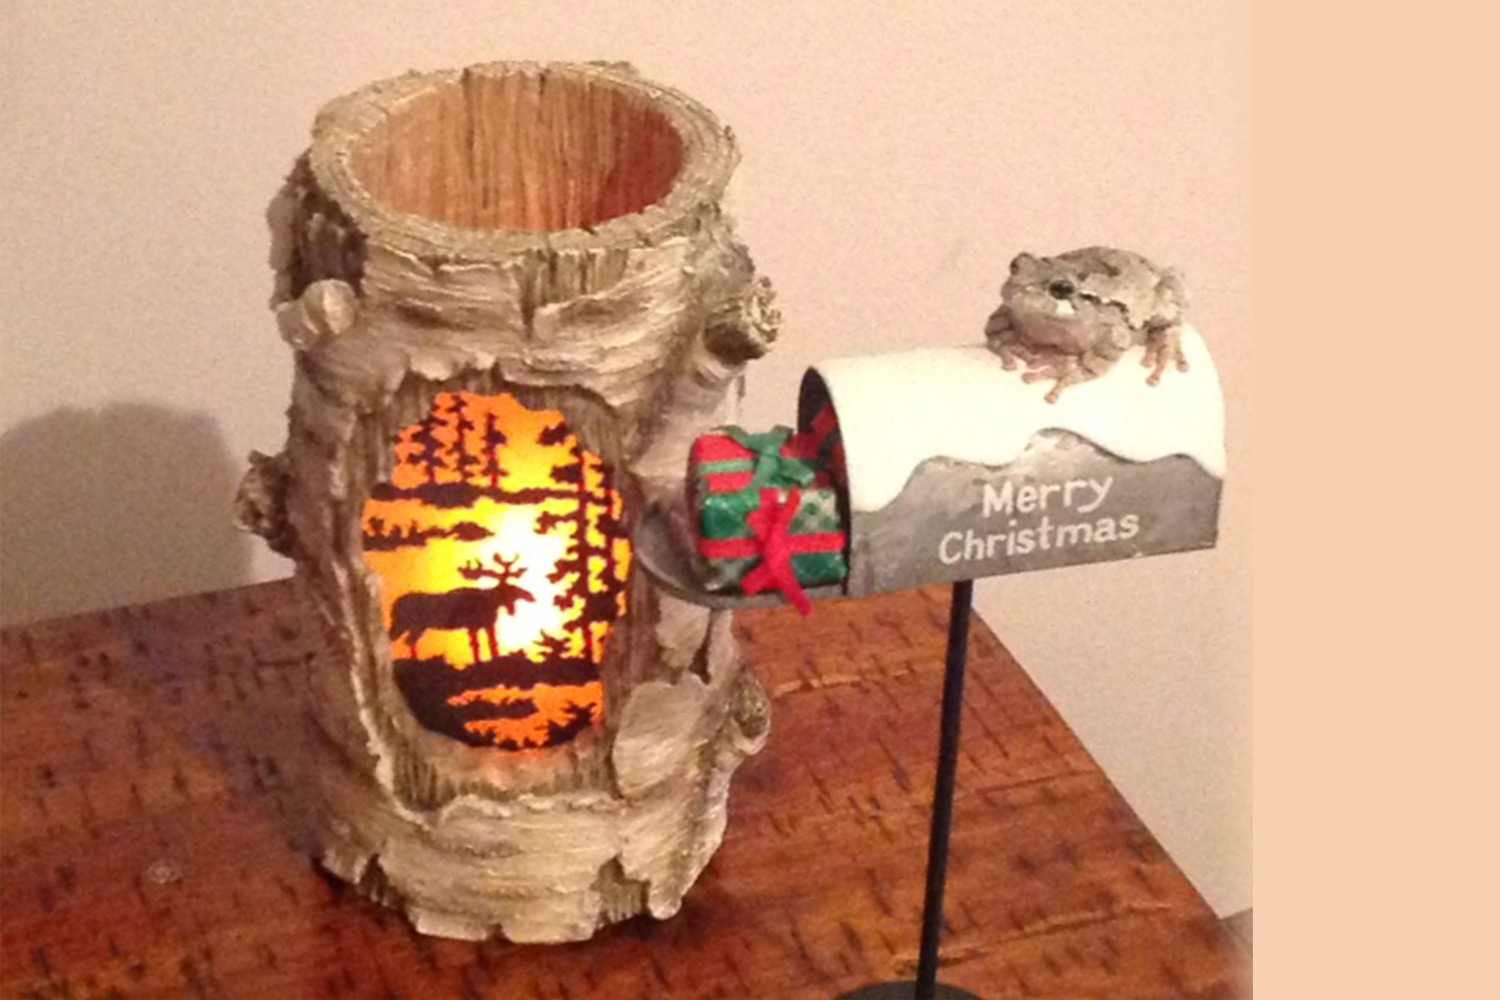 Todd the Toad has appeared to wish us all Merry Christmas!